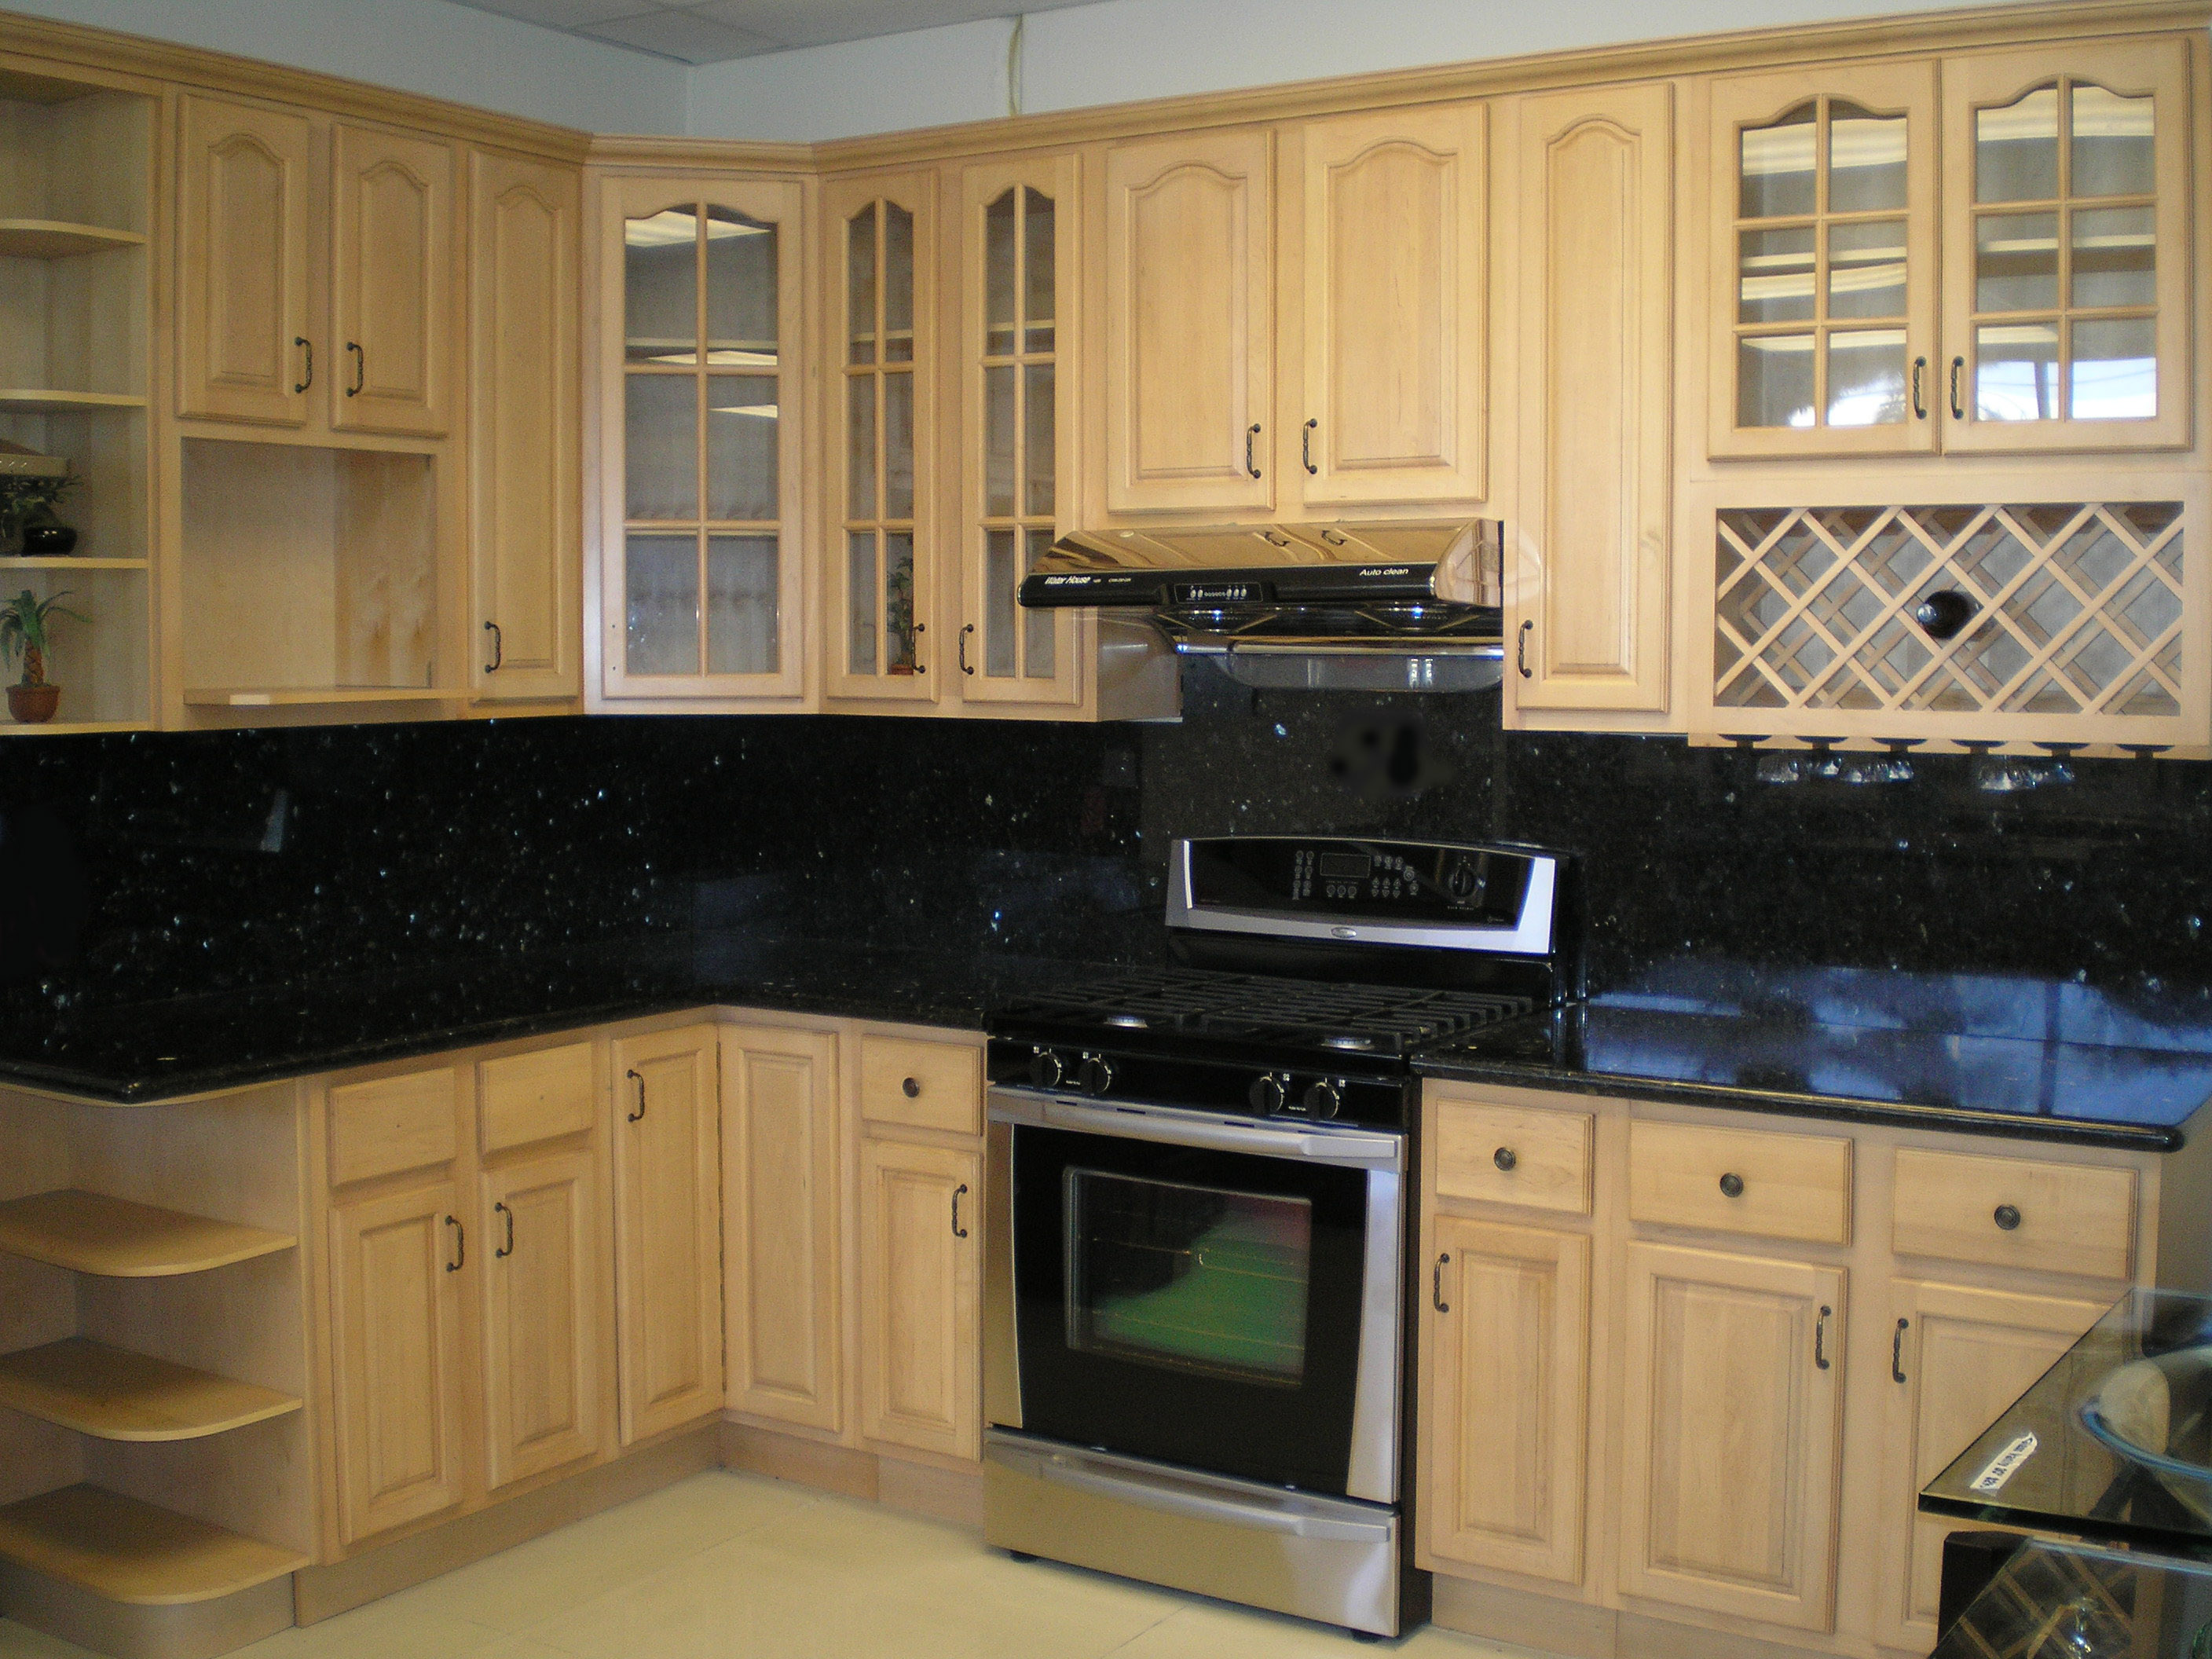 Outstanding Natural Maple Kitchen Cabinets 2816 x 2112 · 1249 kB · jpeg